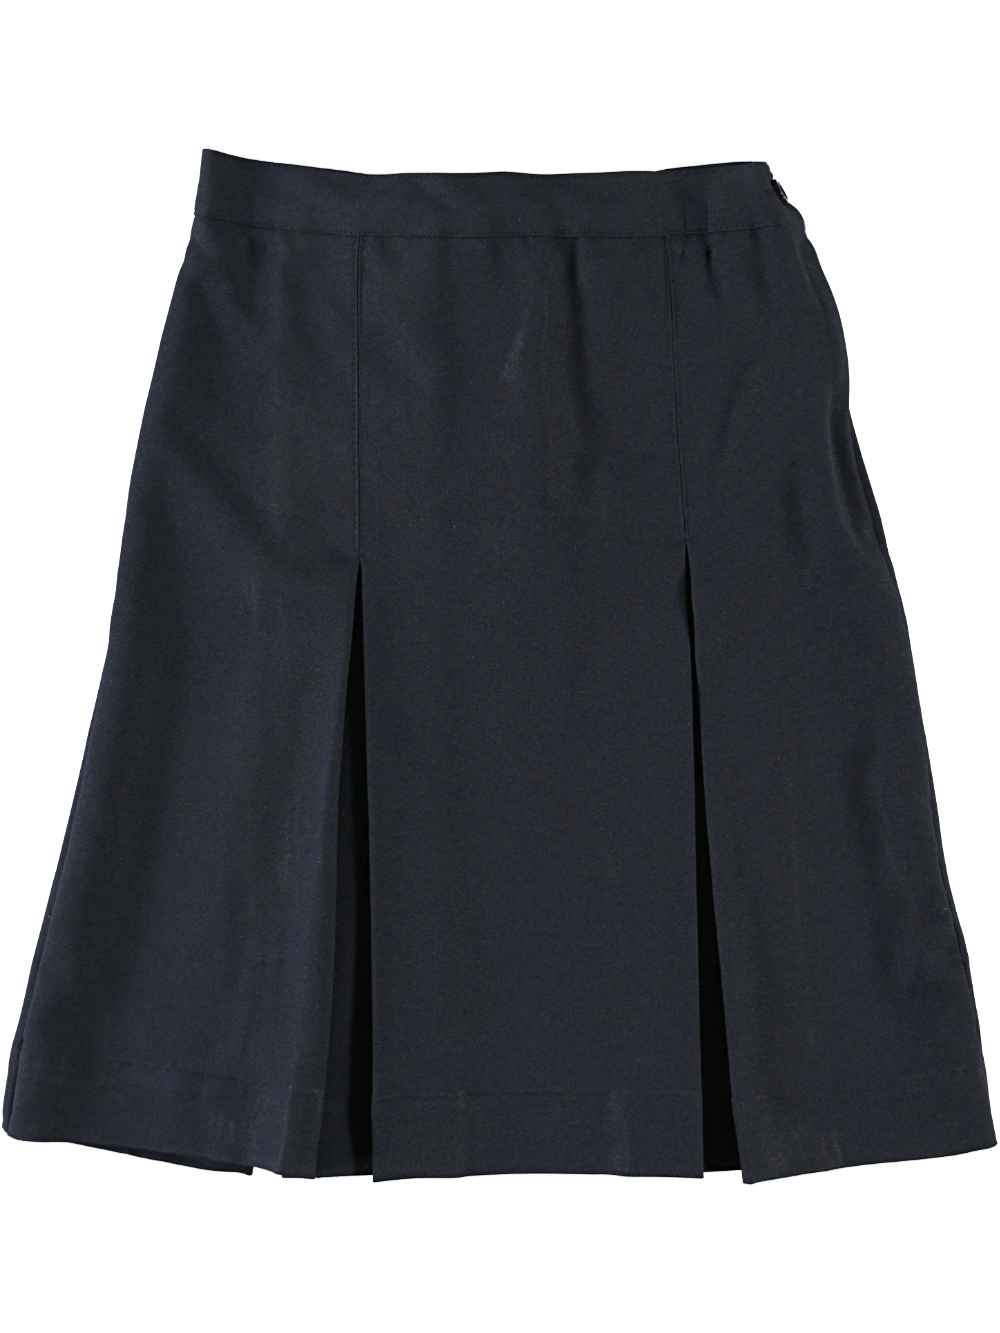 Big Girls' Pleat Perfection Skirt